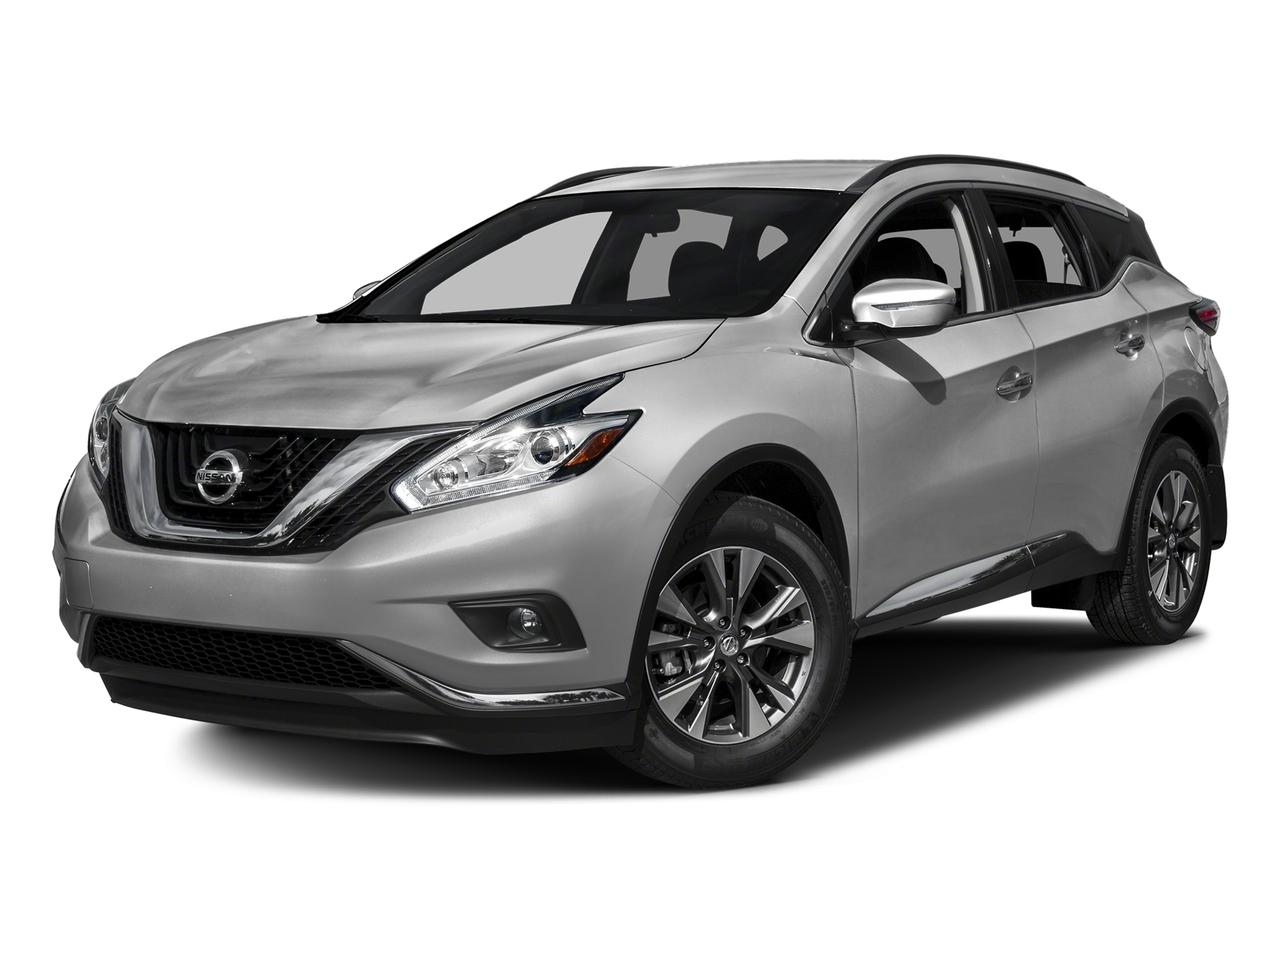 2017 Nissan Murano Vehicle Photo in Owensboro, KY 42302